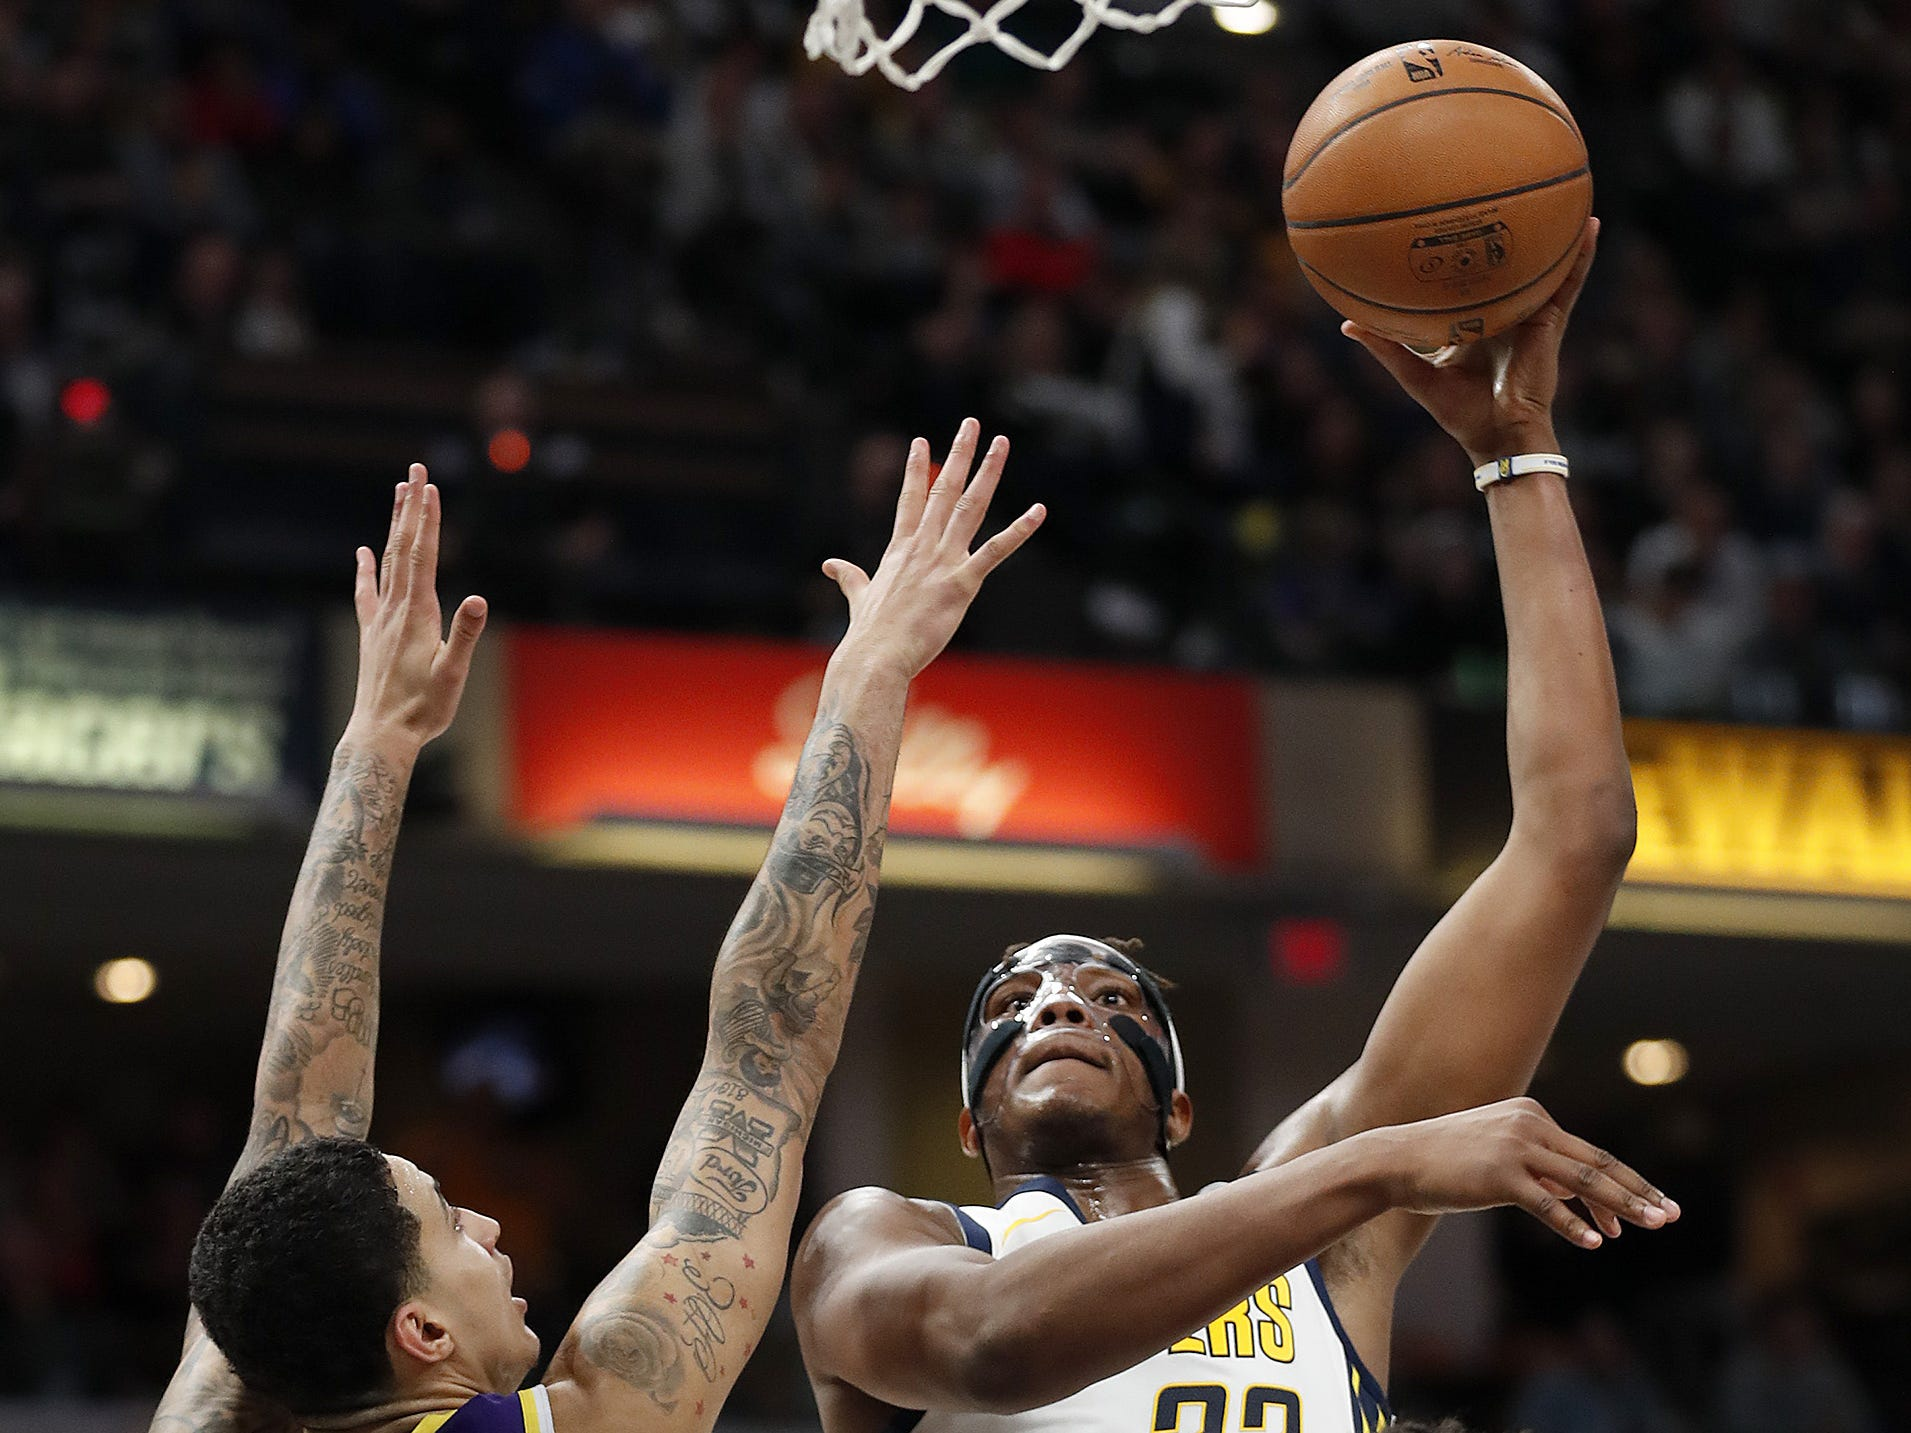 Indiana Pacers center Myles Turner (33) shoots over Los Angeles Lakers forward Kyle Kuzma (0) in the second half of their game at Bankers Life Fieldhouse on Tuesday, Feb. 5, 2019.